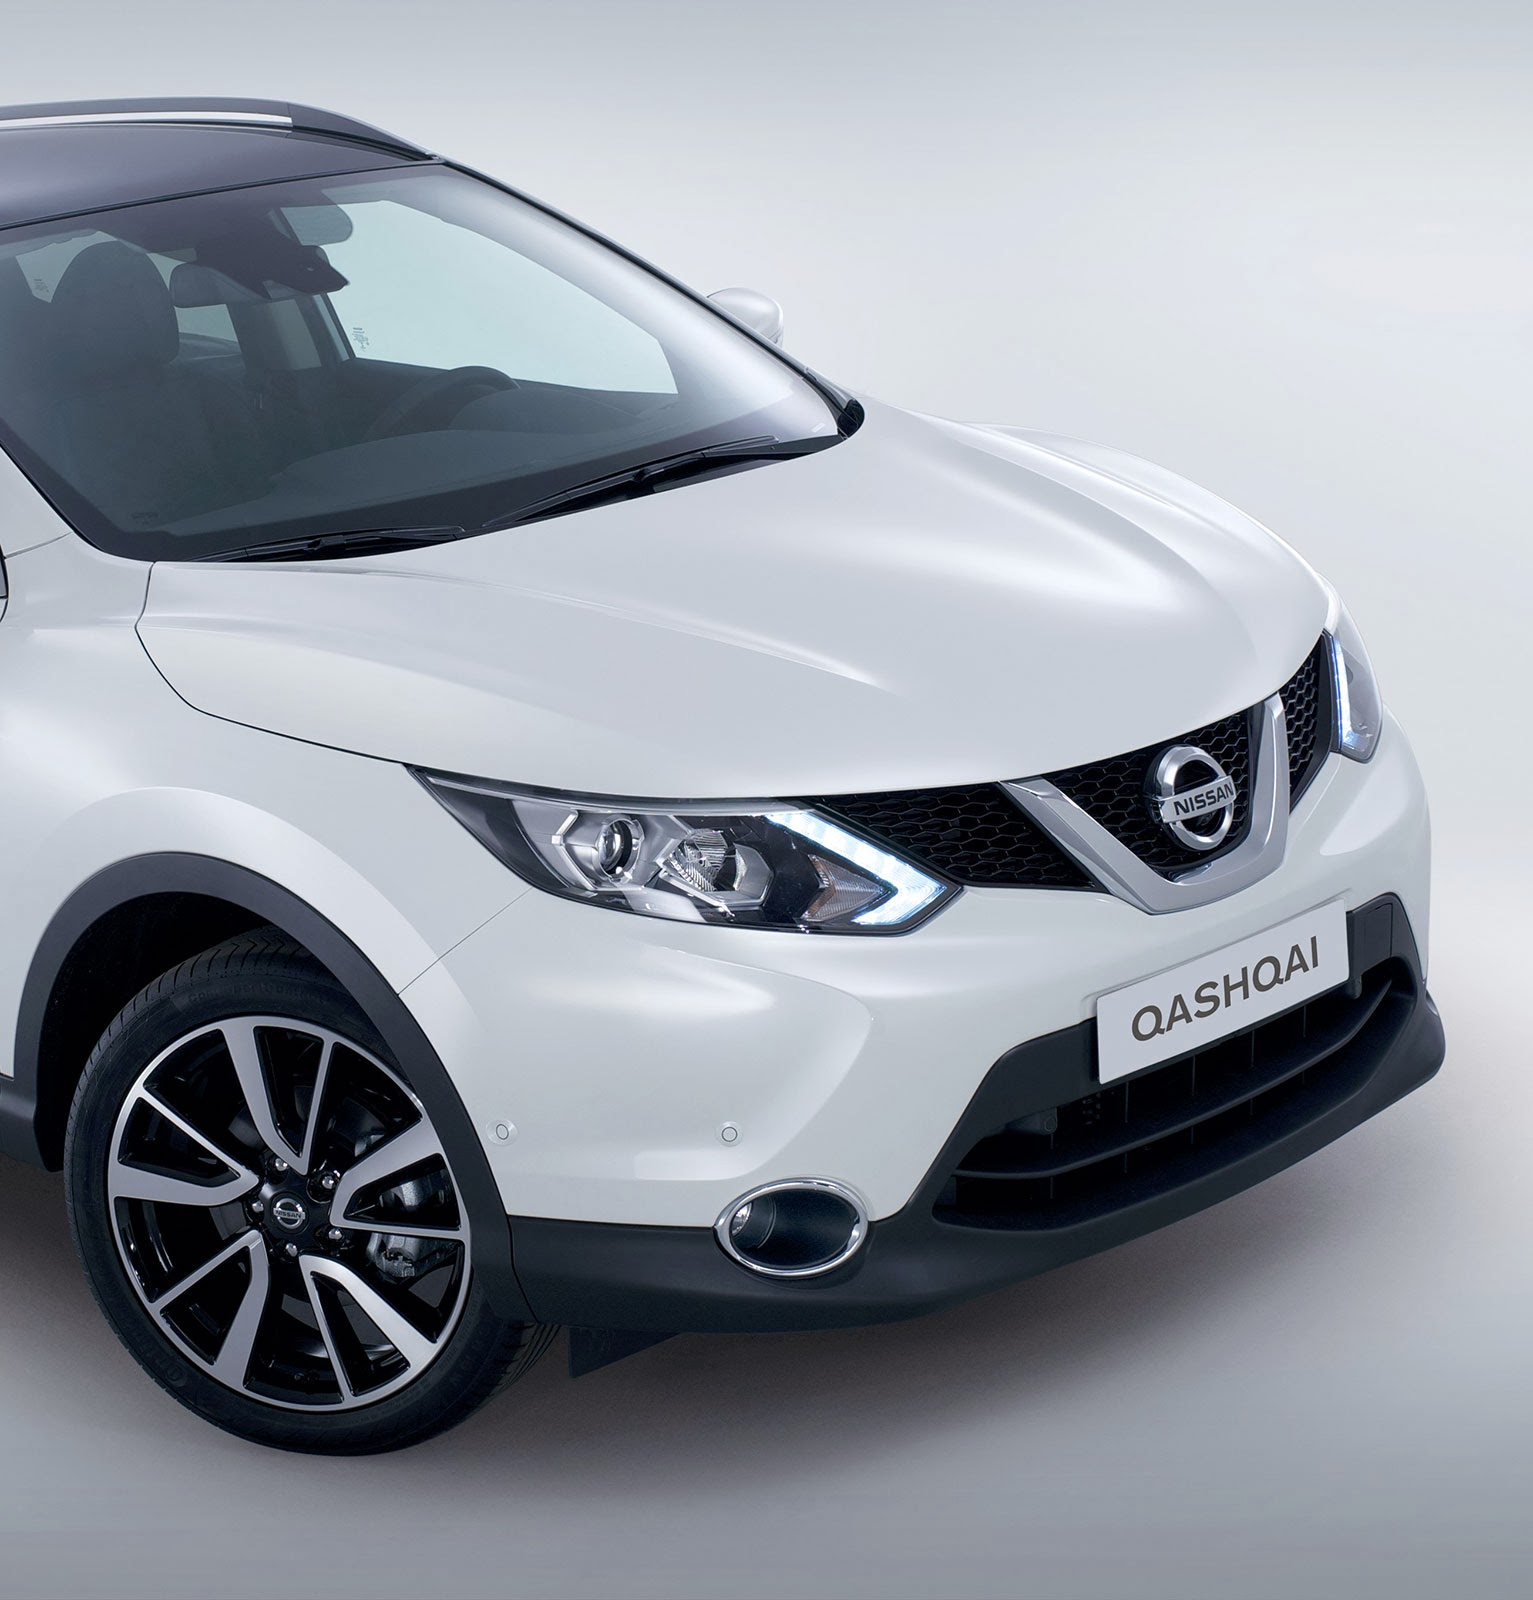 nissan qashqai 2014 photo gallery cars 2015 pics hub. Black Bedroom Furniture Sets. Home Design Ideas